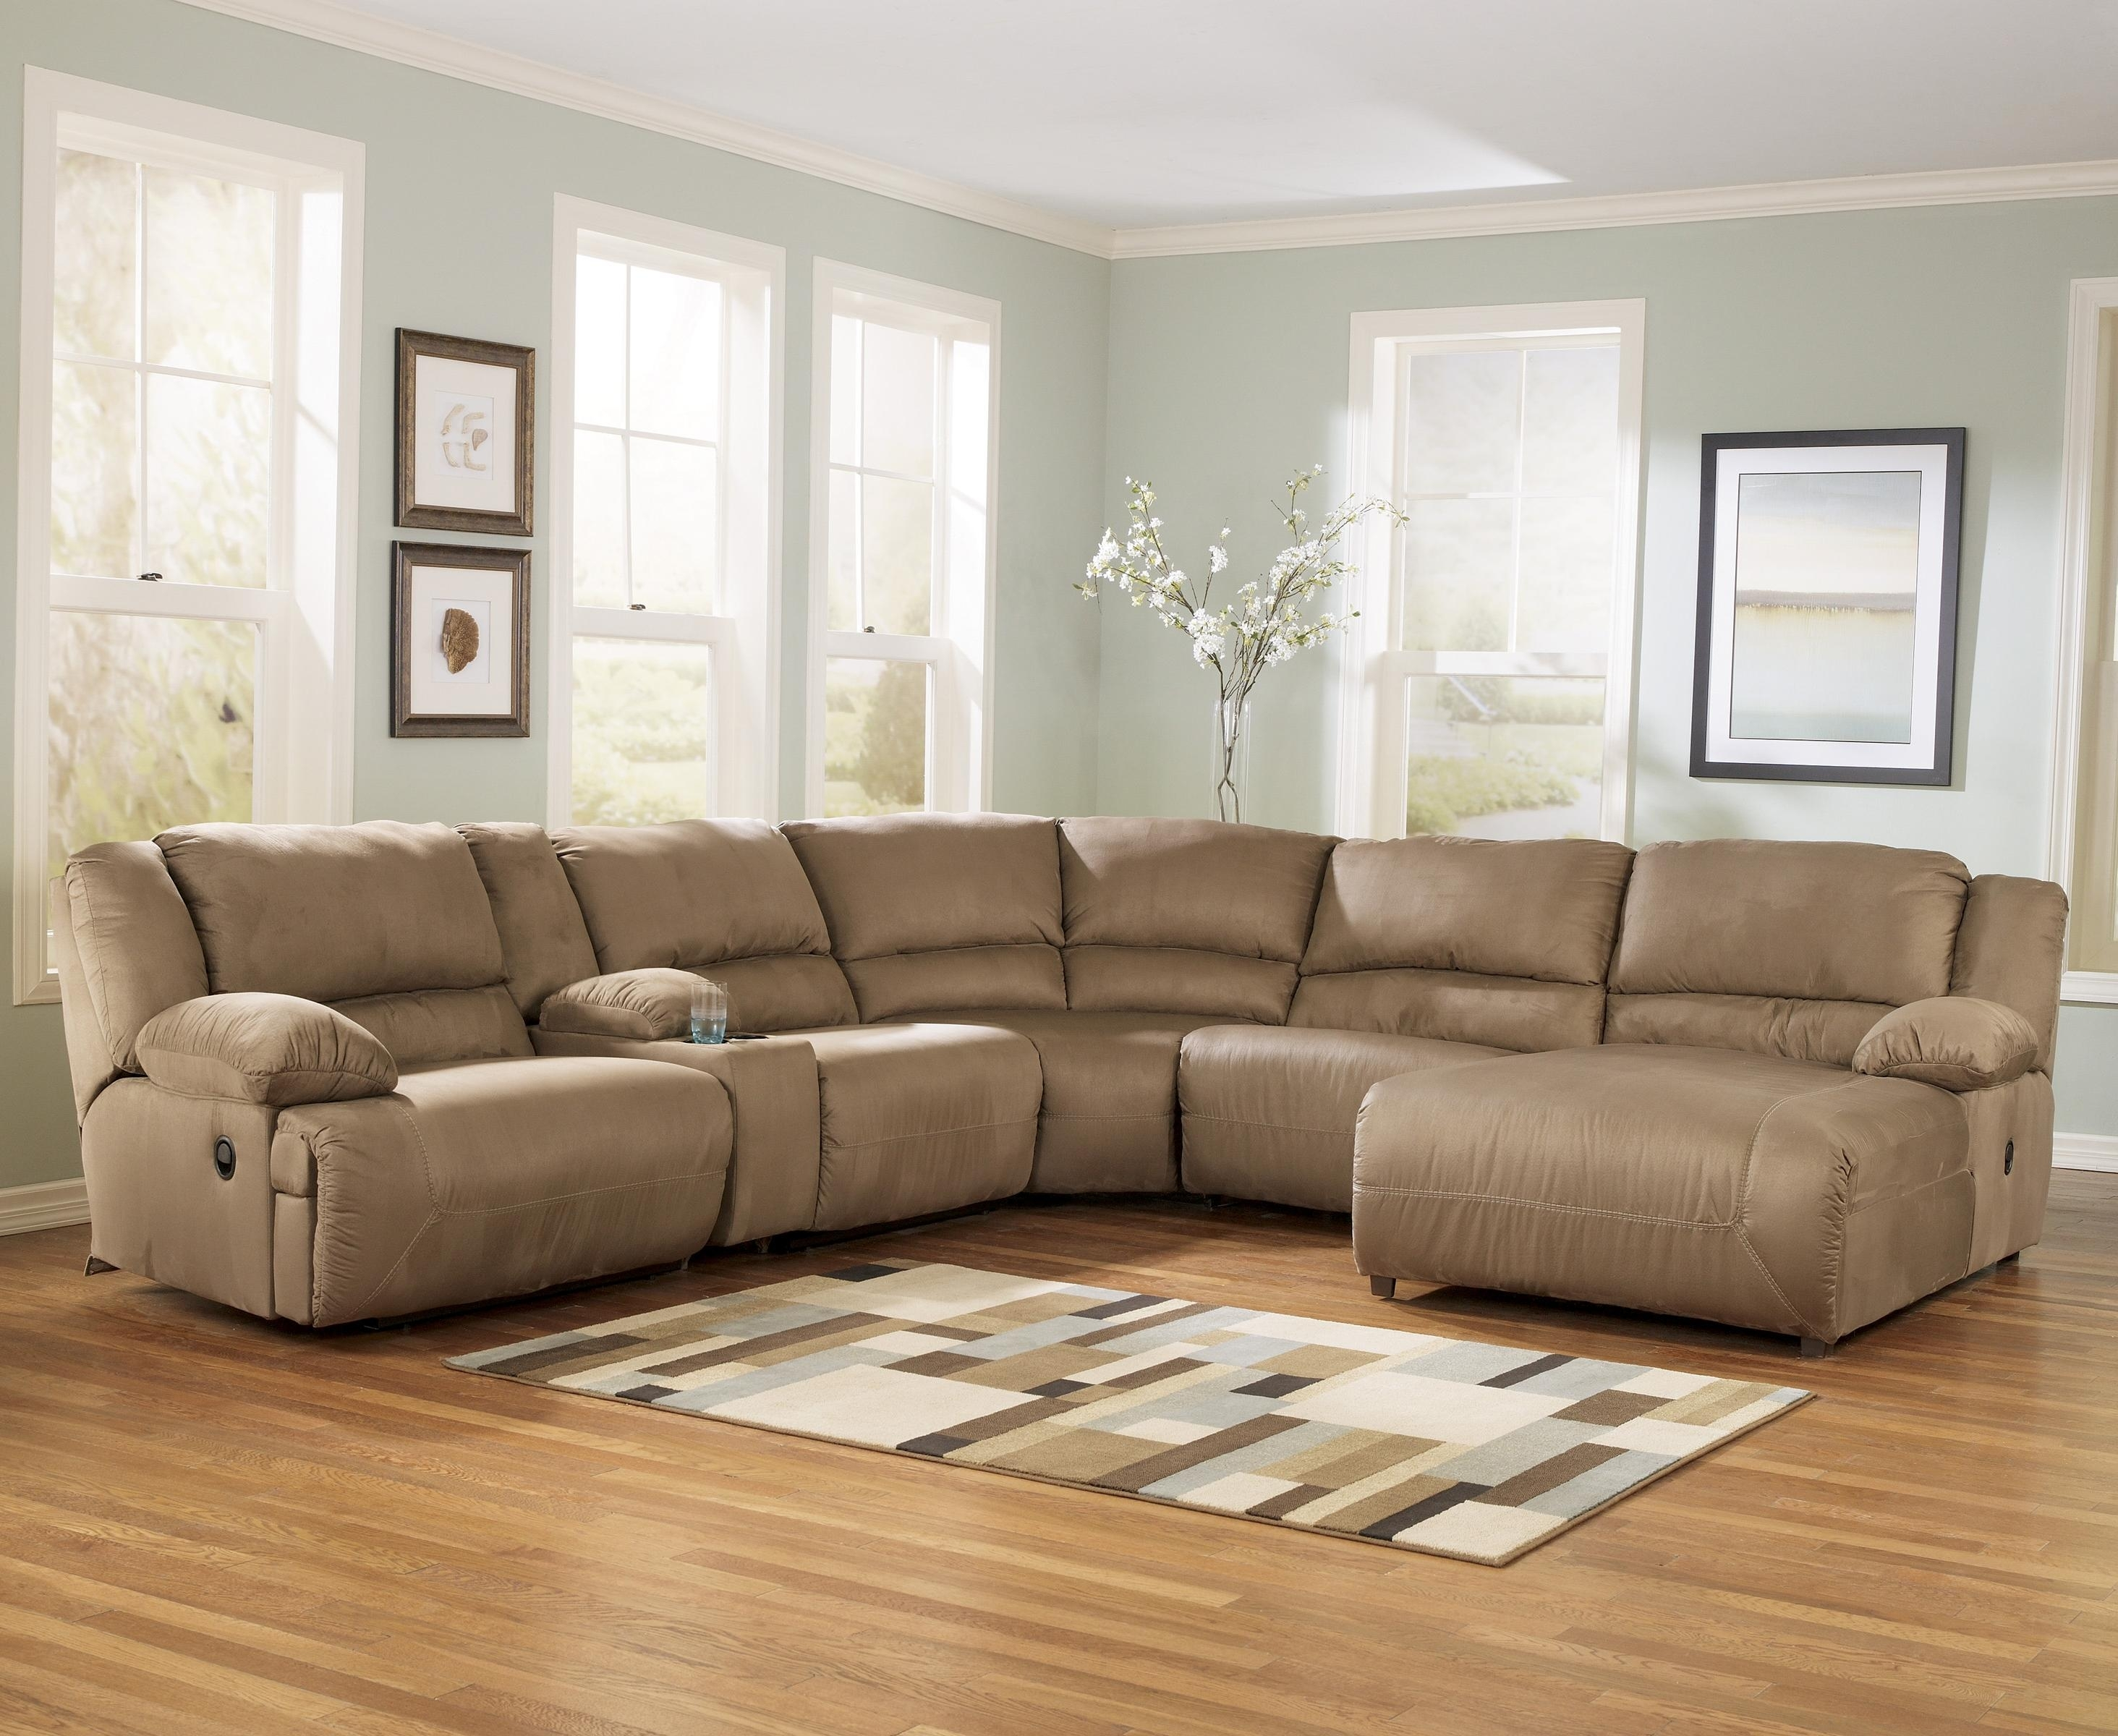 6 Piece Sectional Sofa – Ujecdent With Norfolk Grey 6 Piece Sectionals (Image 3 of 25)